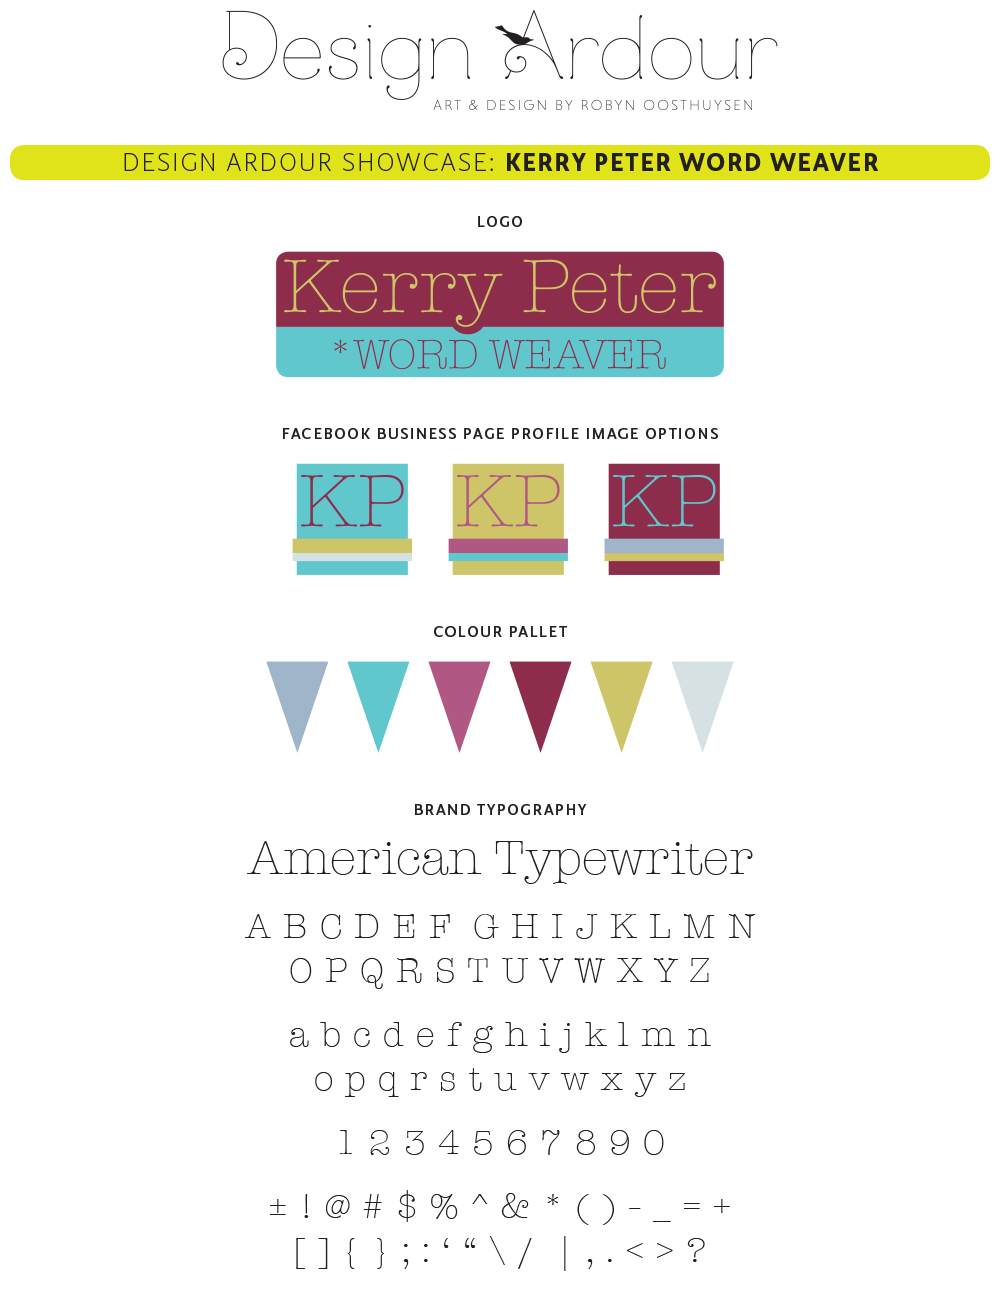 Design Ardour: Art & Design by Robyn Oosthuysen | Kerry Peter Words Weaver branding